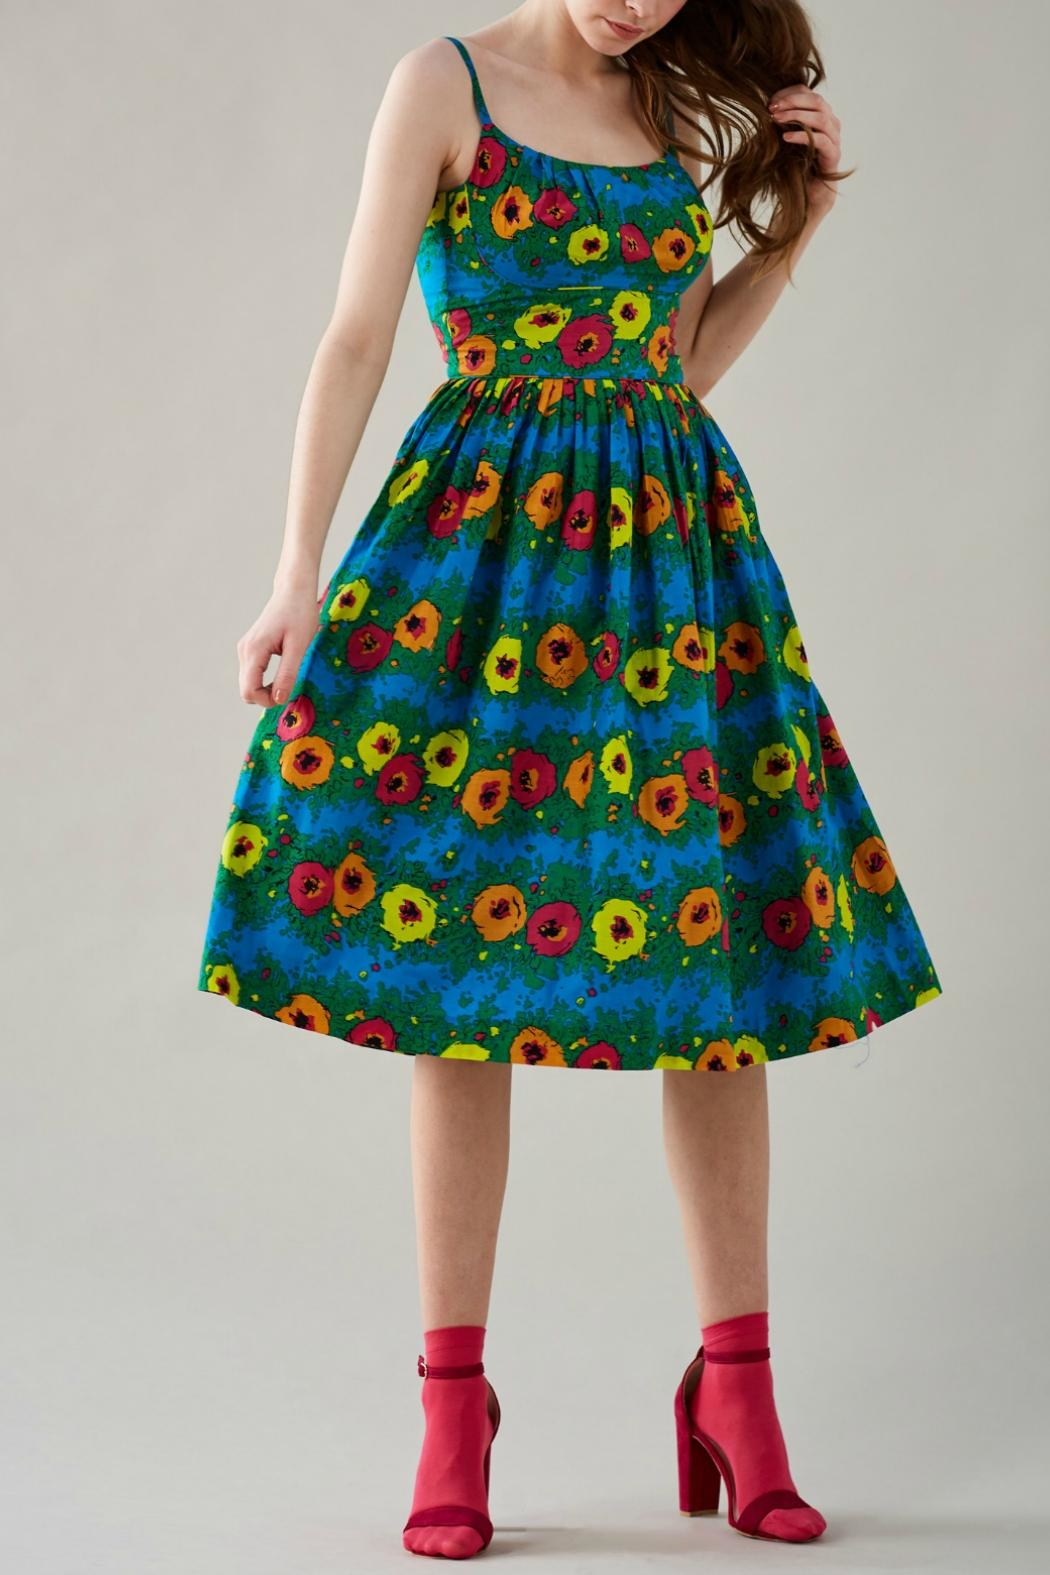 Emily & Fin Blazing Blooms Dress - Main Image